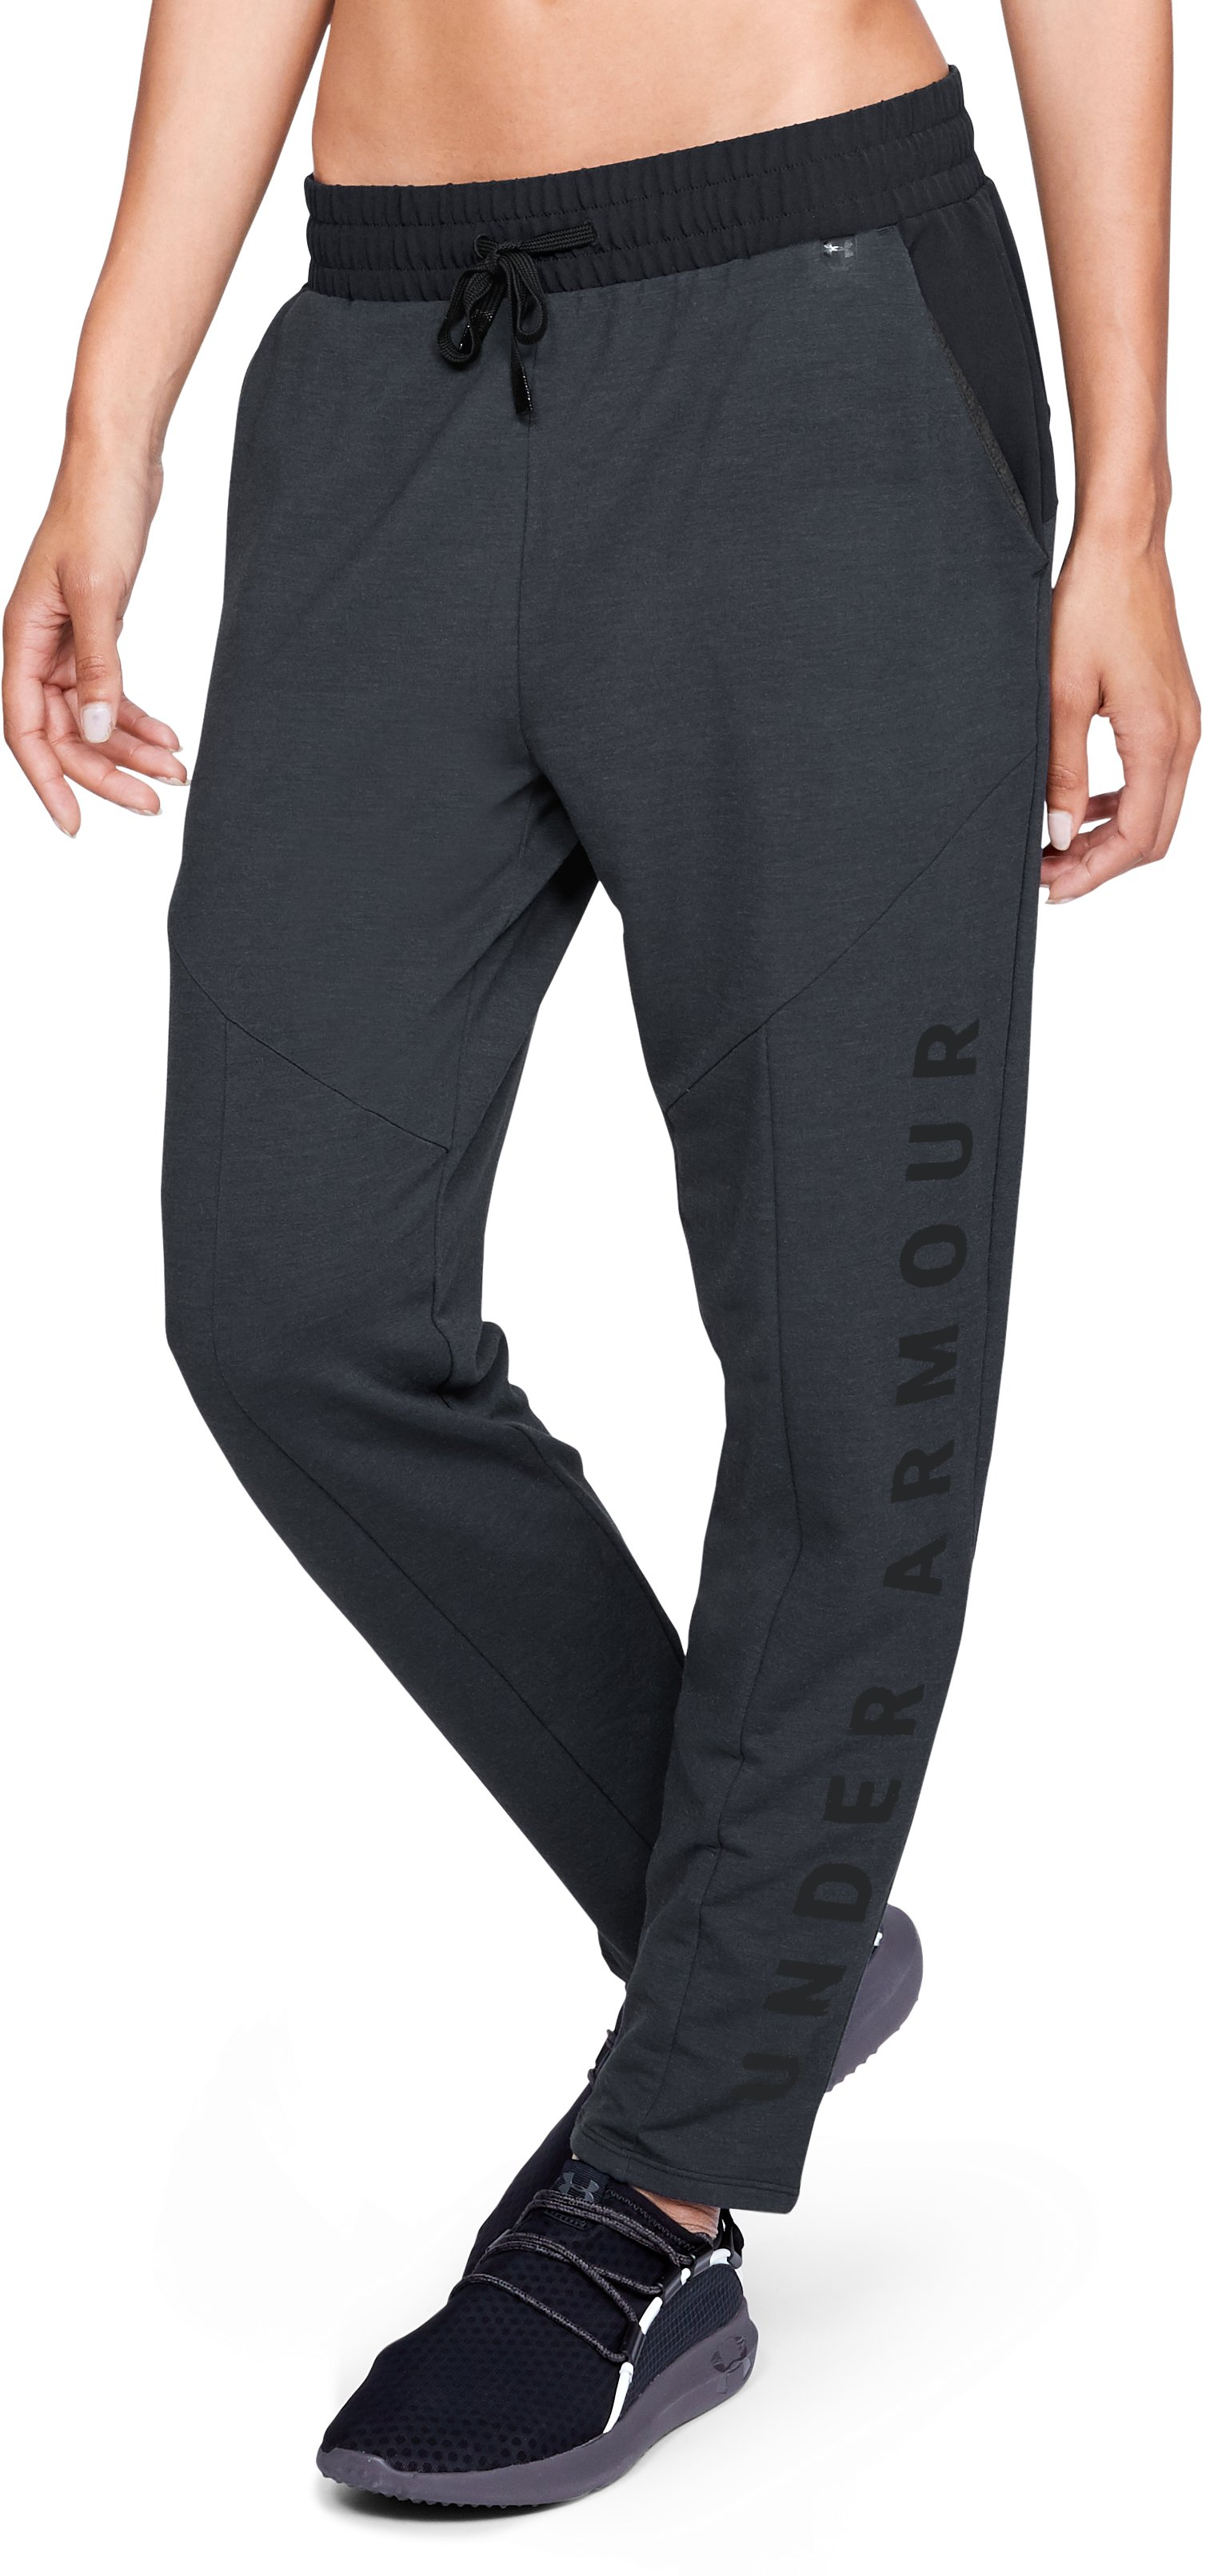 warm sweat pants Women's UA Unstoppable World's Greatest Knit Sweat Pants Awesome sweatpants would definitely recommend them....I love these pants....They are great for spring weather.